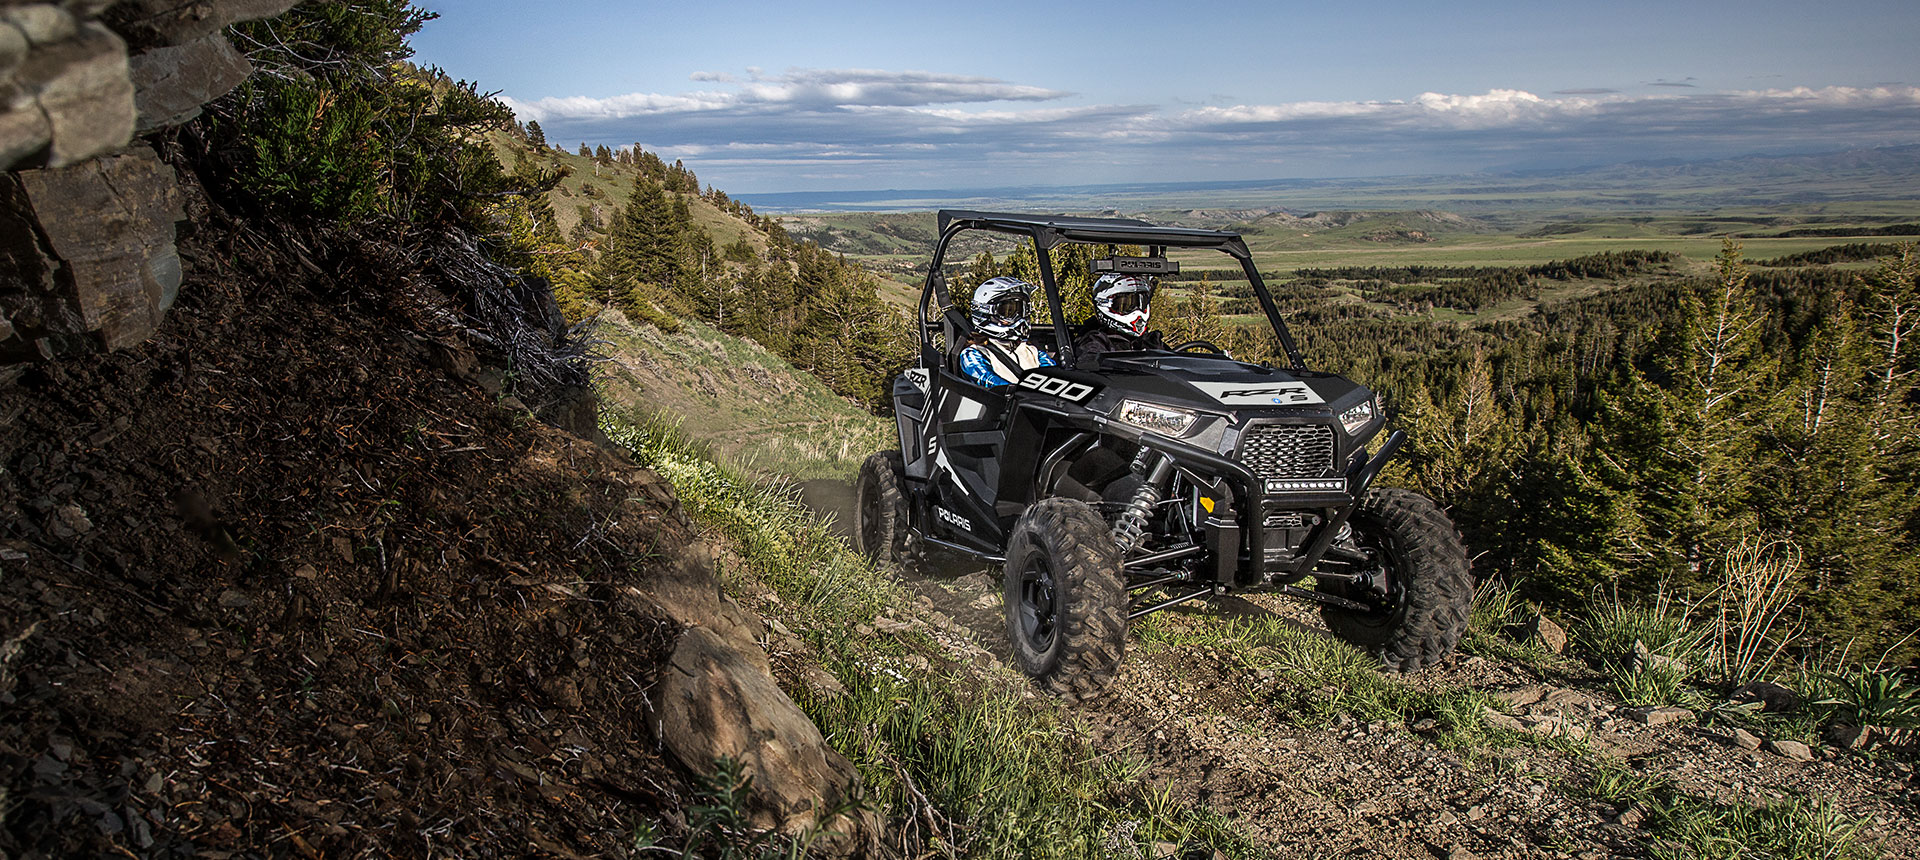 2019 Polaris RZR S 900 EPS in Milford, New Hampshire - Photo 11